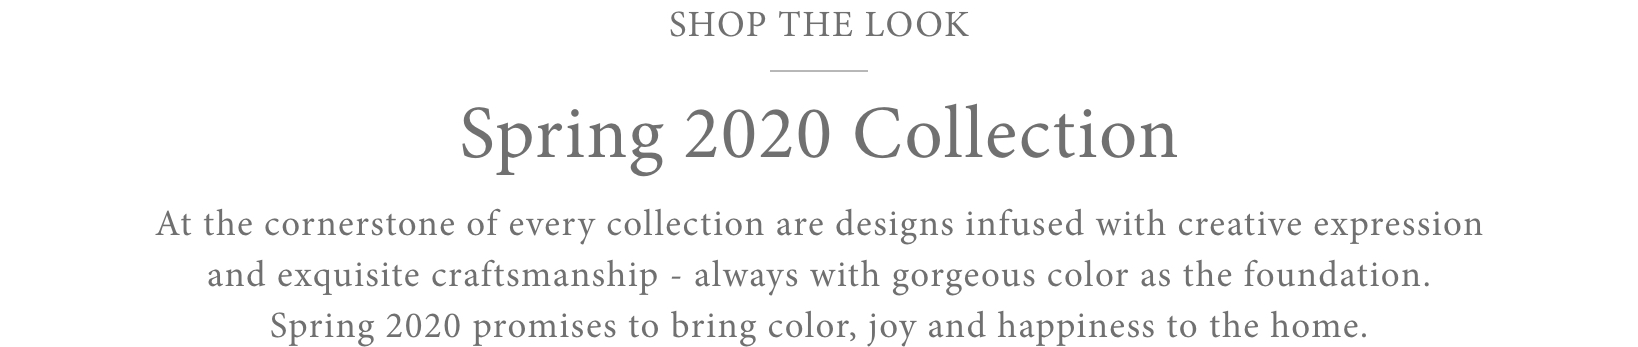 Shop the Look - Spring 2020